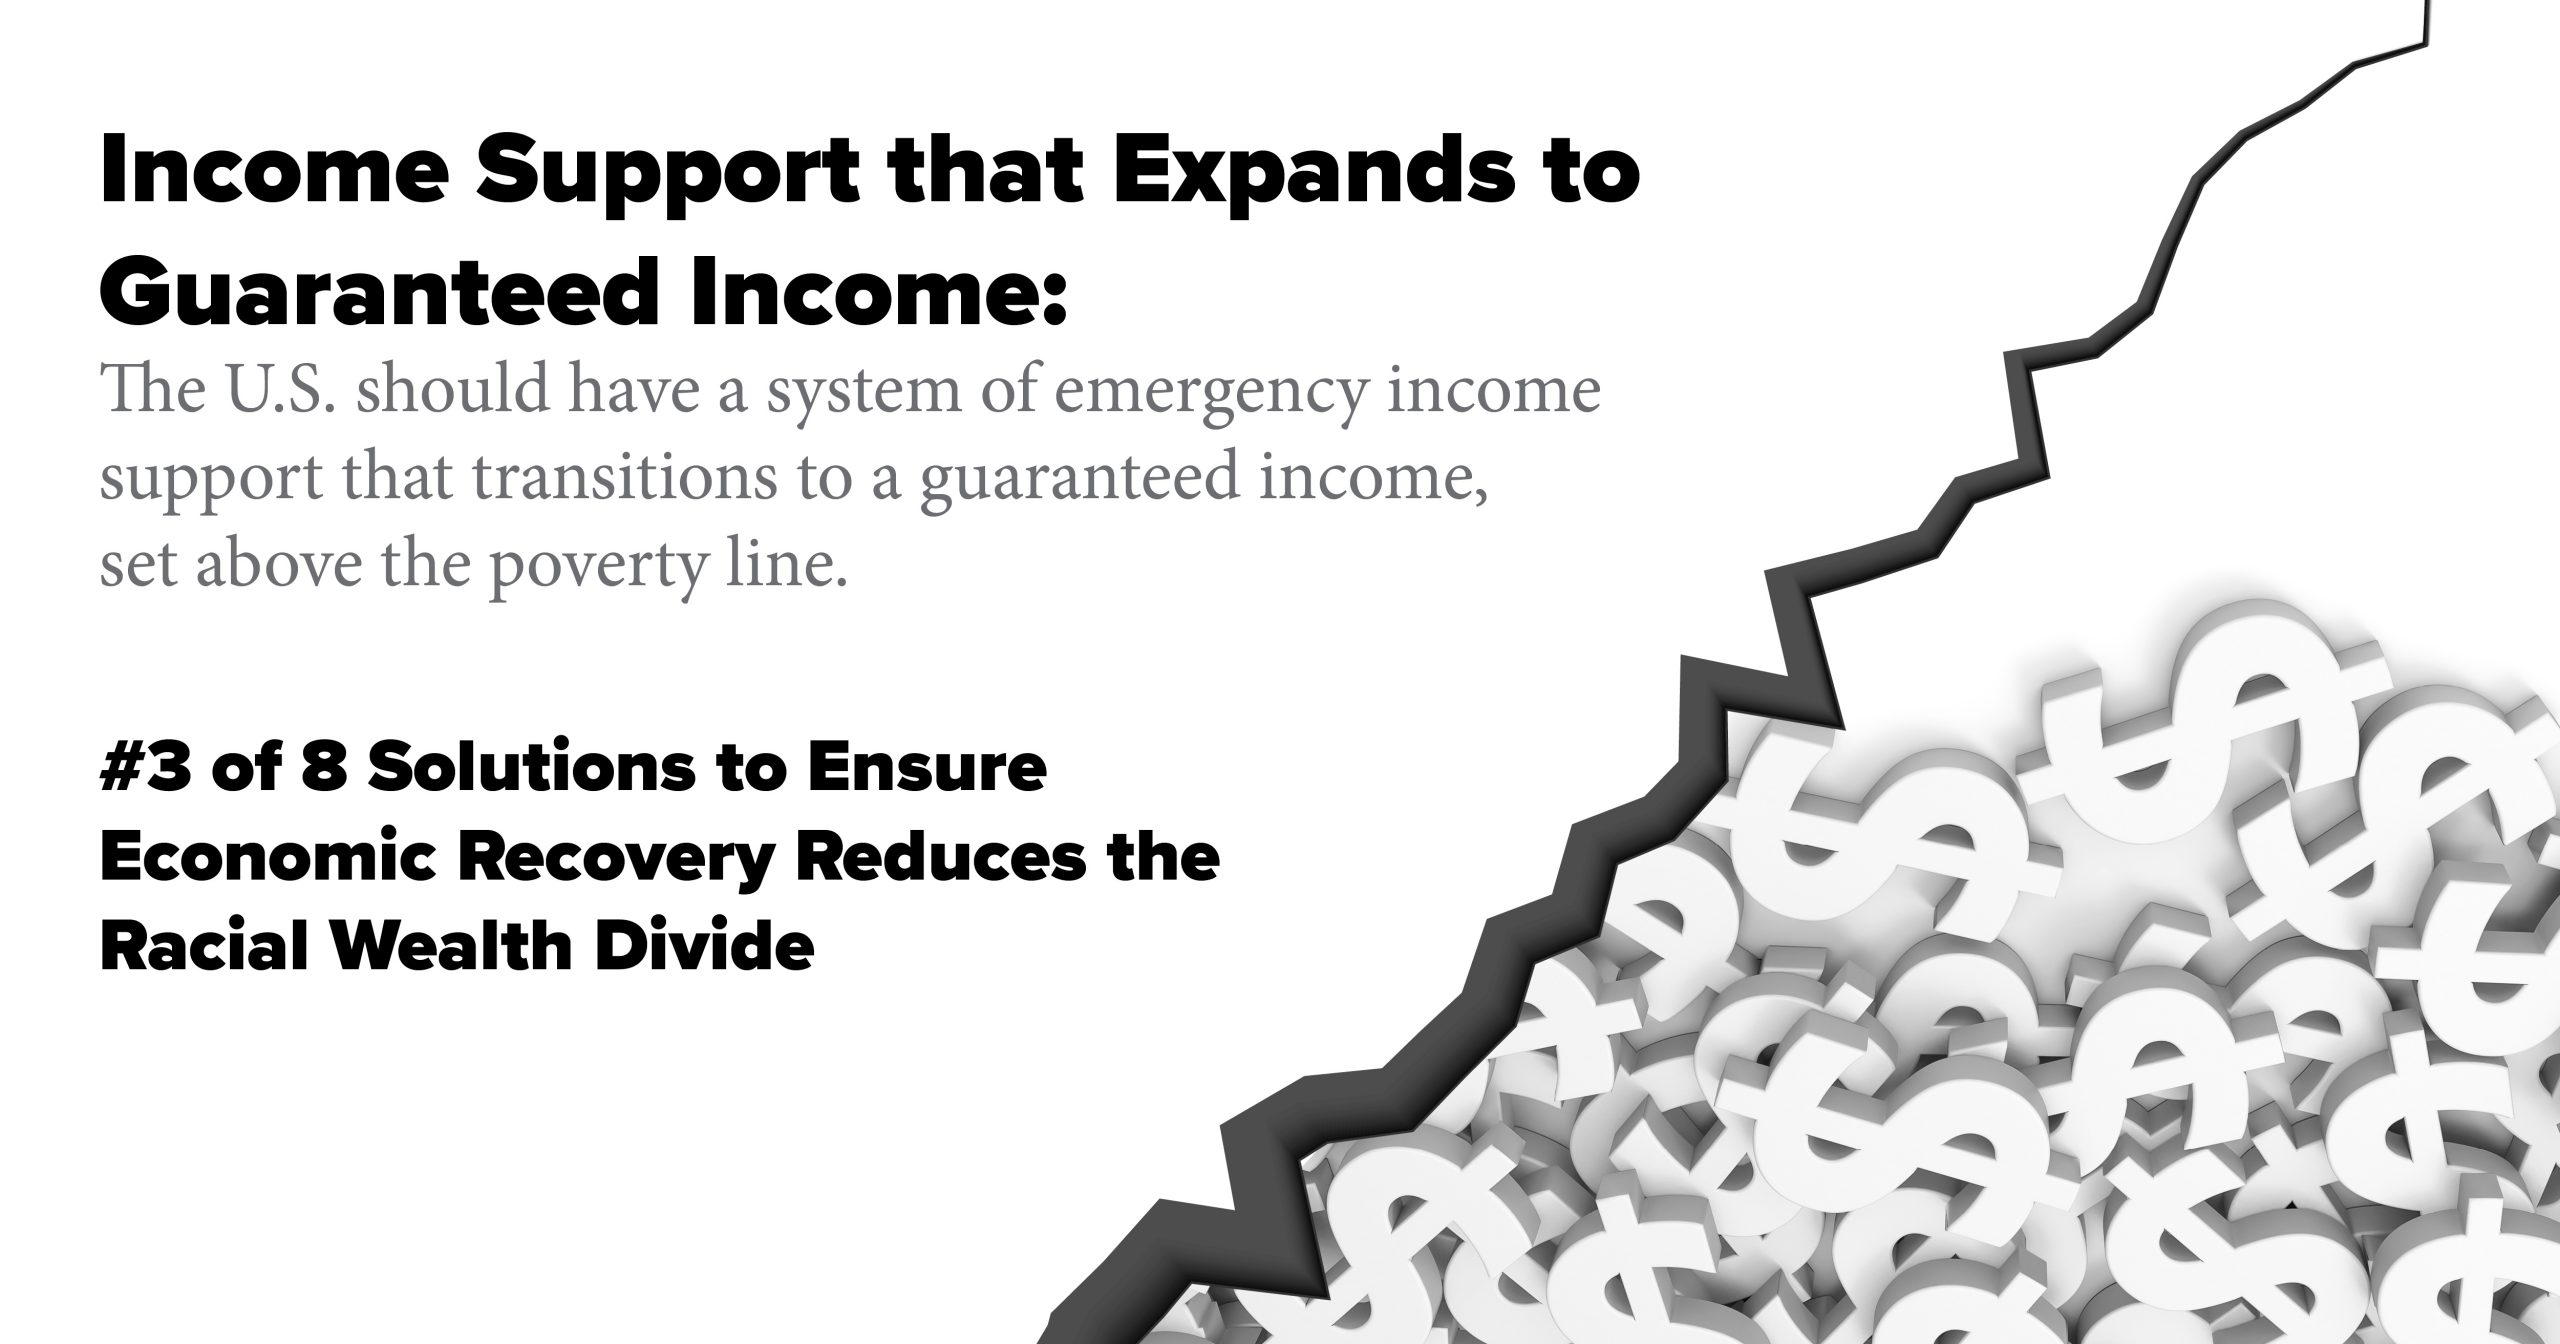 Income Support that Expands to Guaranteed Income: The U.S. should have a system of emergency income support that transitions to a guaranteed income, set above the poverty line.